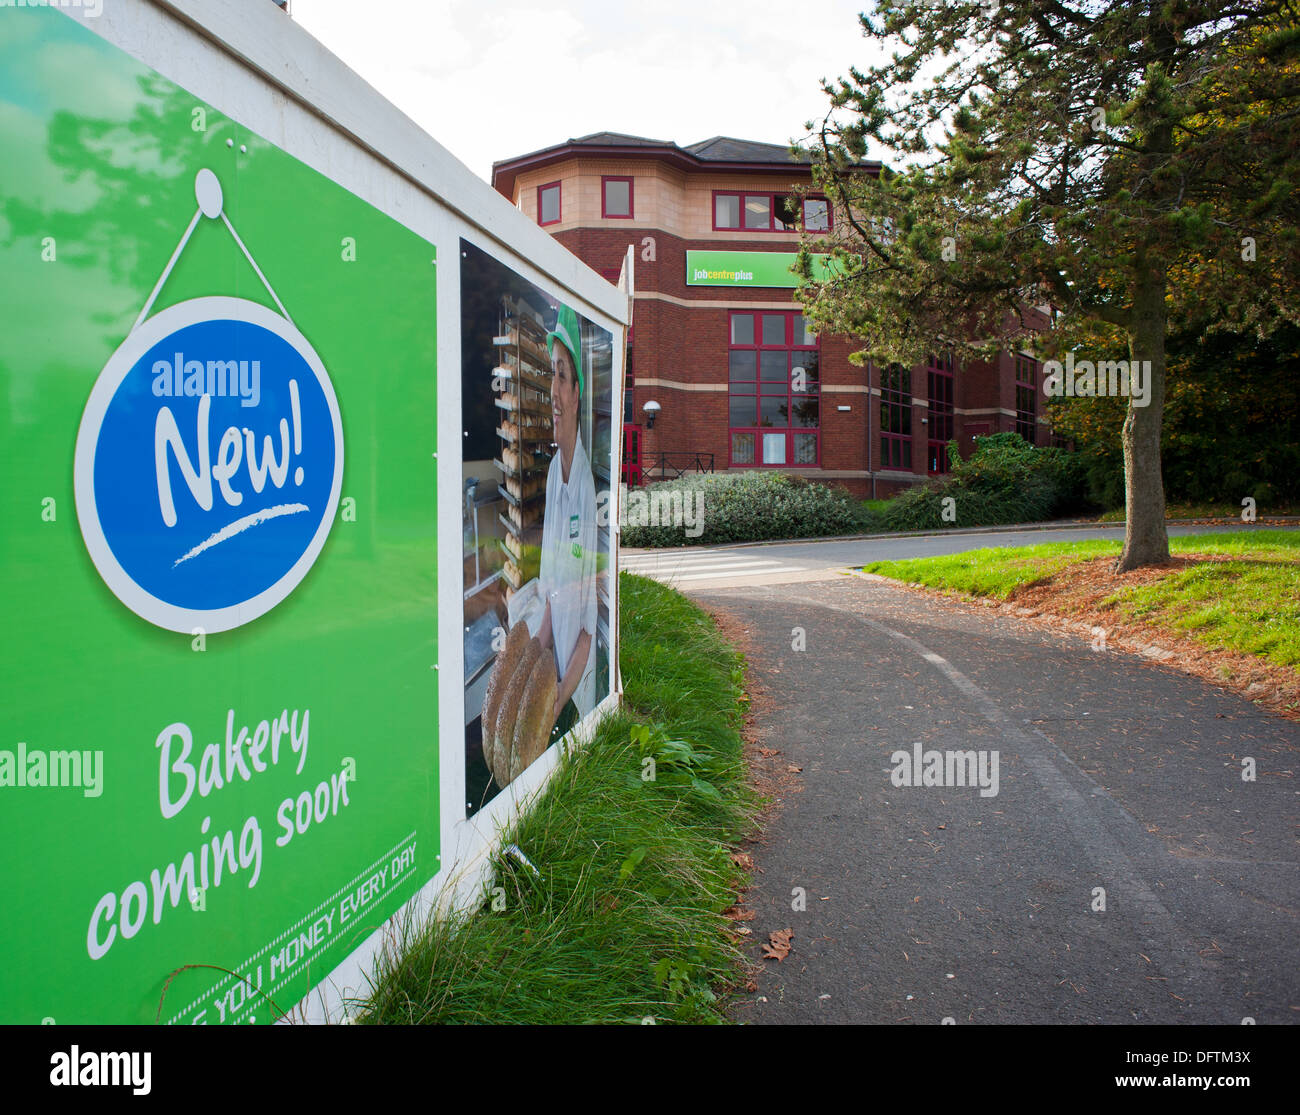 Advertising board for new jobs at ASDA and a Job Centre, Telford, Shropshire, England - Stock Image